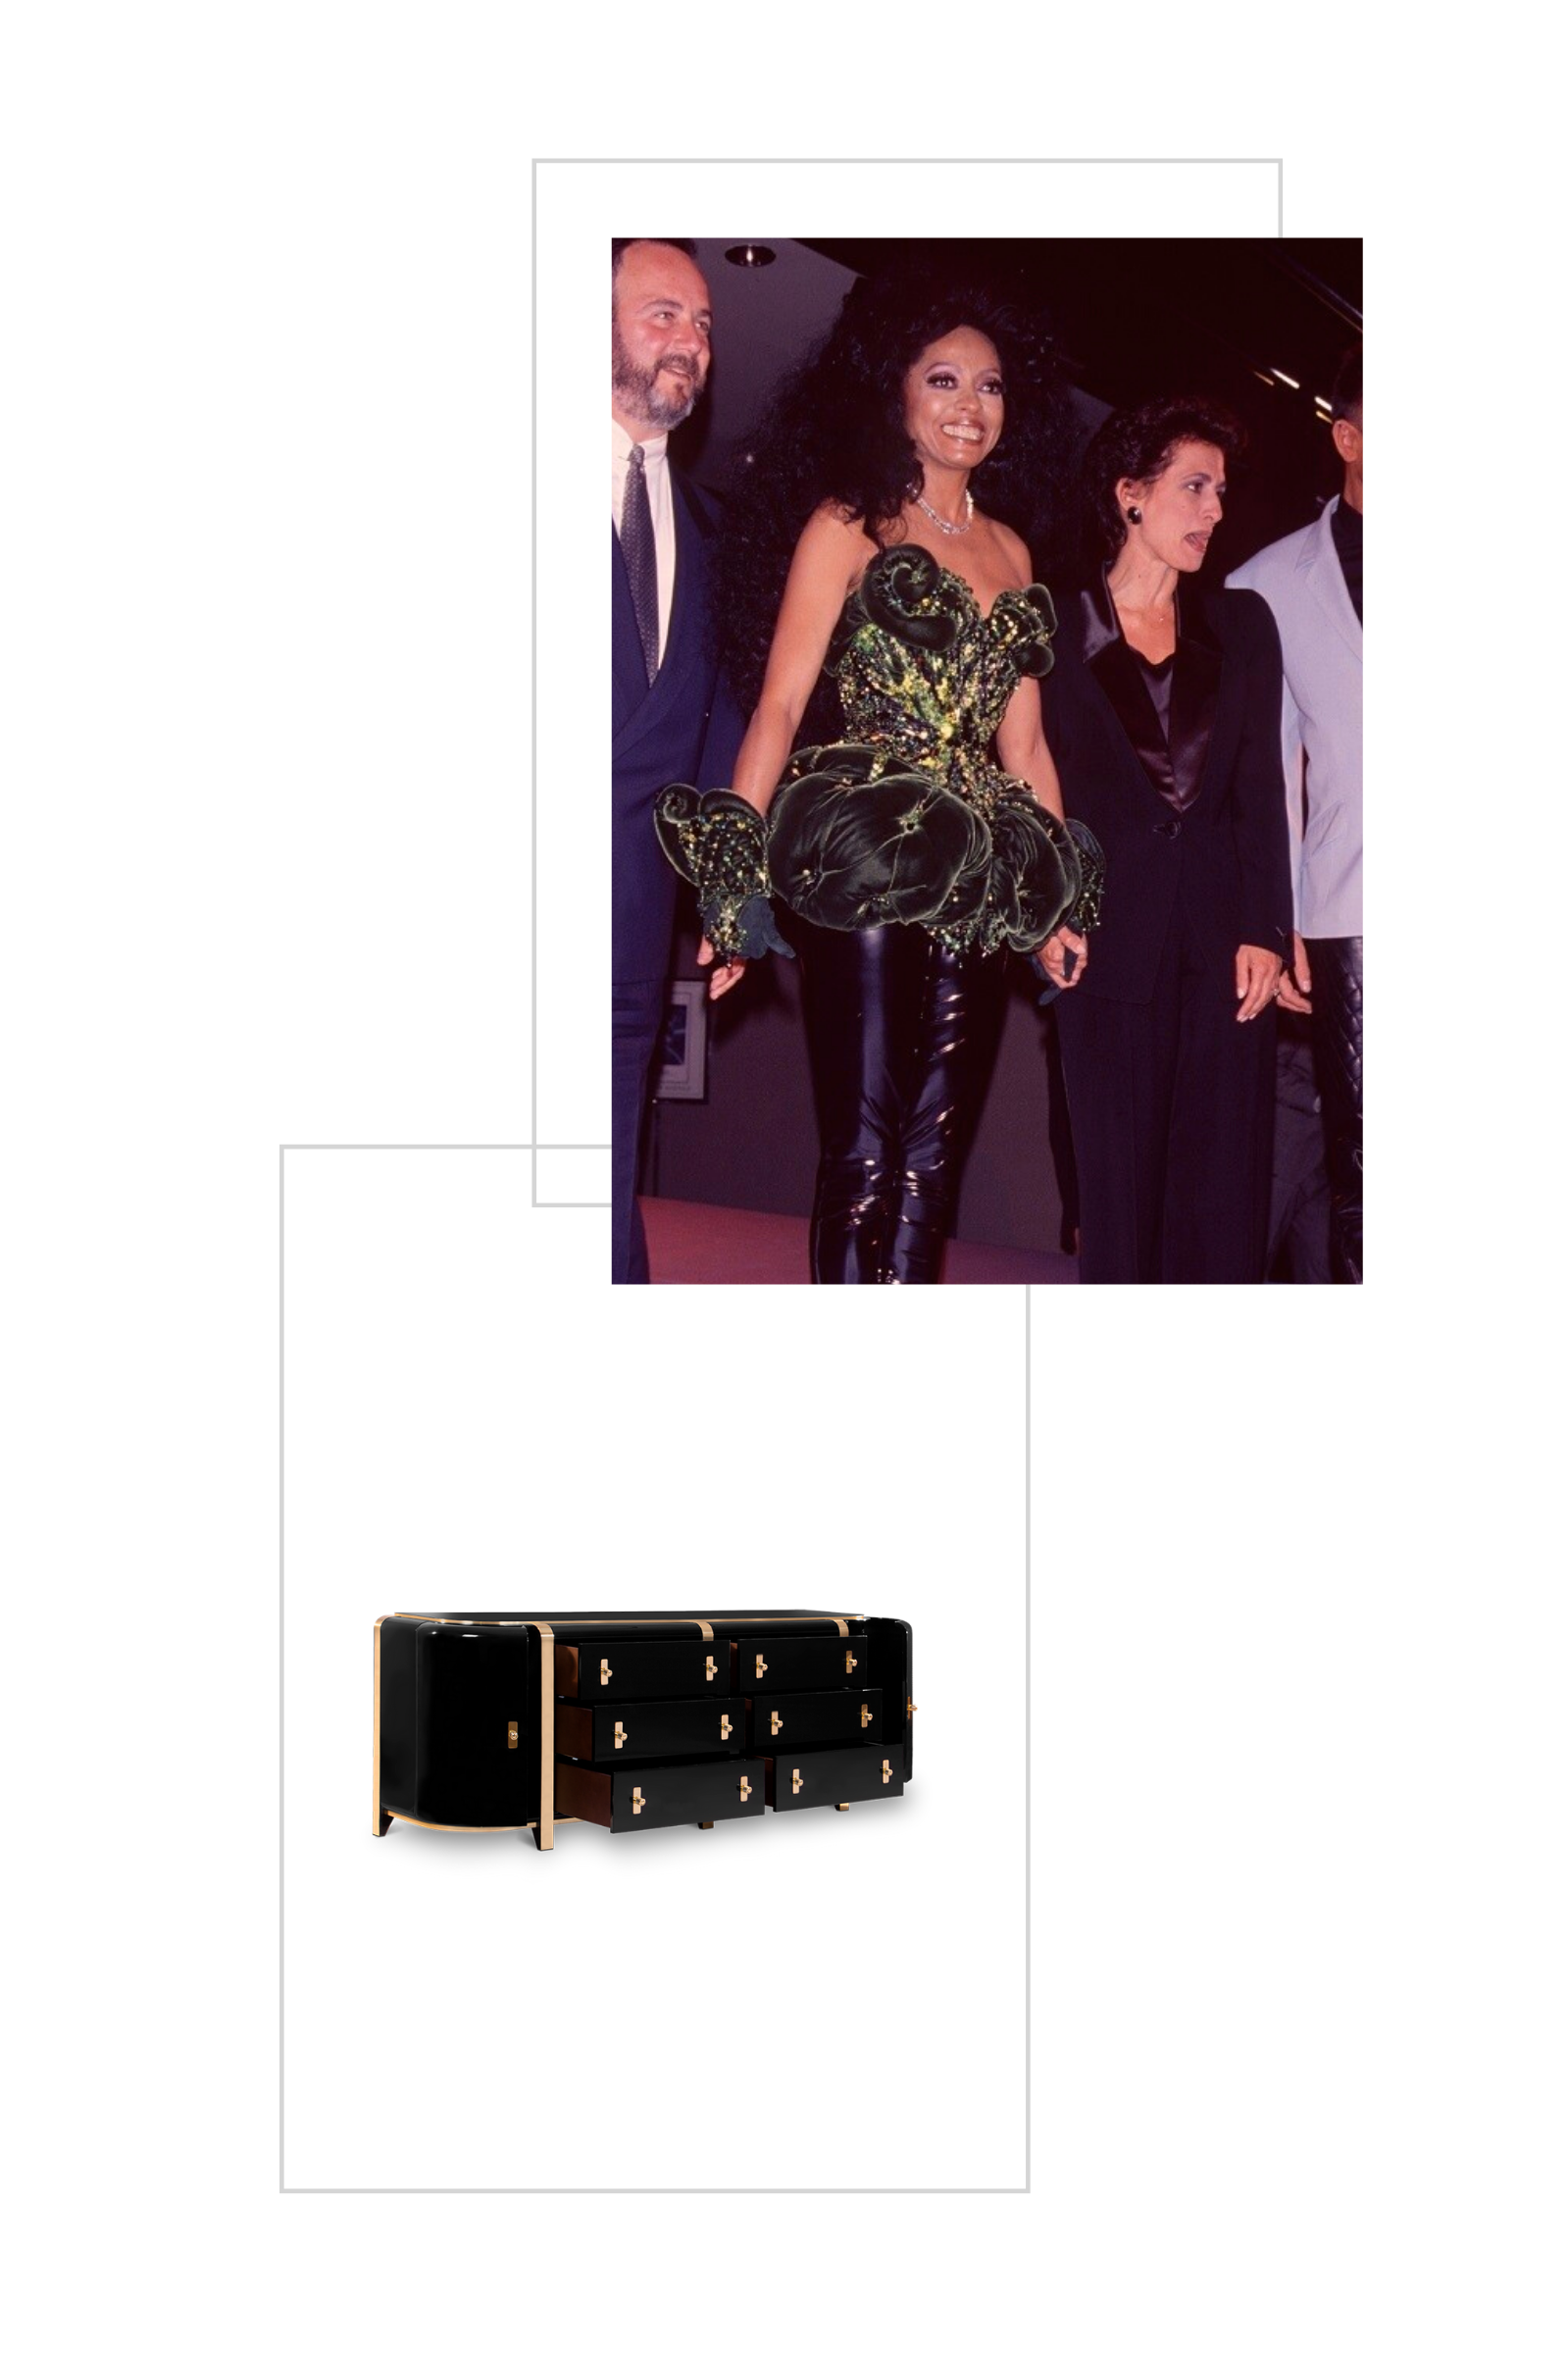 Vintage Style: Get Inspired By This Incredible Diana Ross OutfitsVintage Style: Get Inspired By This Incredible Diana Ross Outfits vintage style Vintage Style: Get Inspired By This Incredible Diana Ross Outfits Design sem nome 1